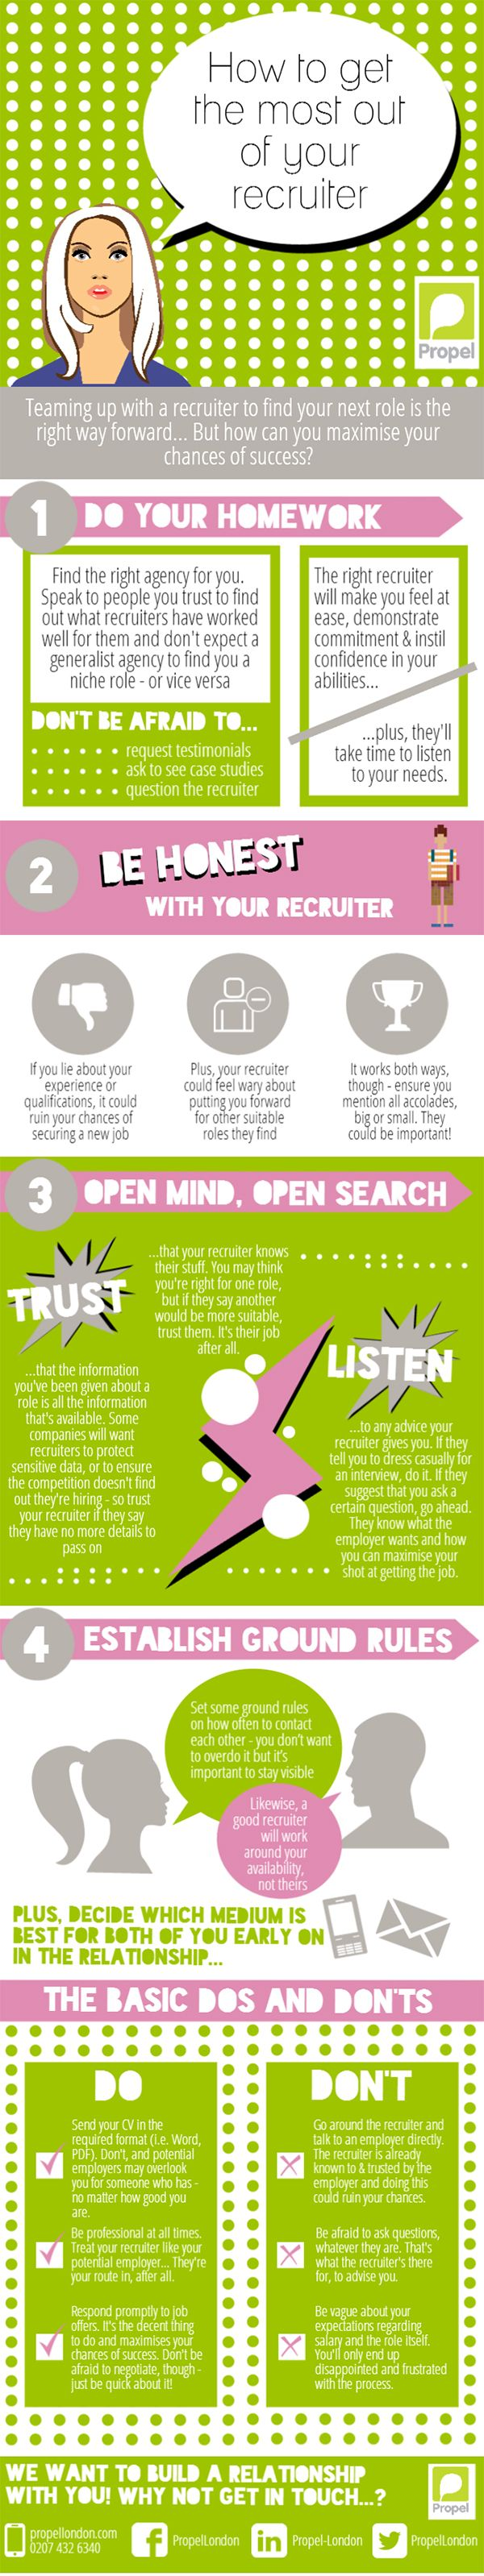 How To Get The Most From Your Recruiter   #Infographic #Career #JobHunting #HowTo